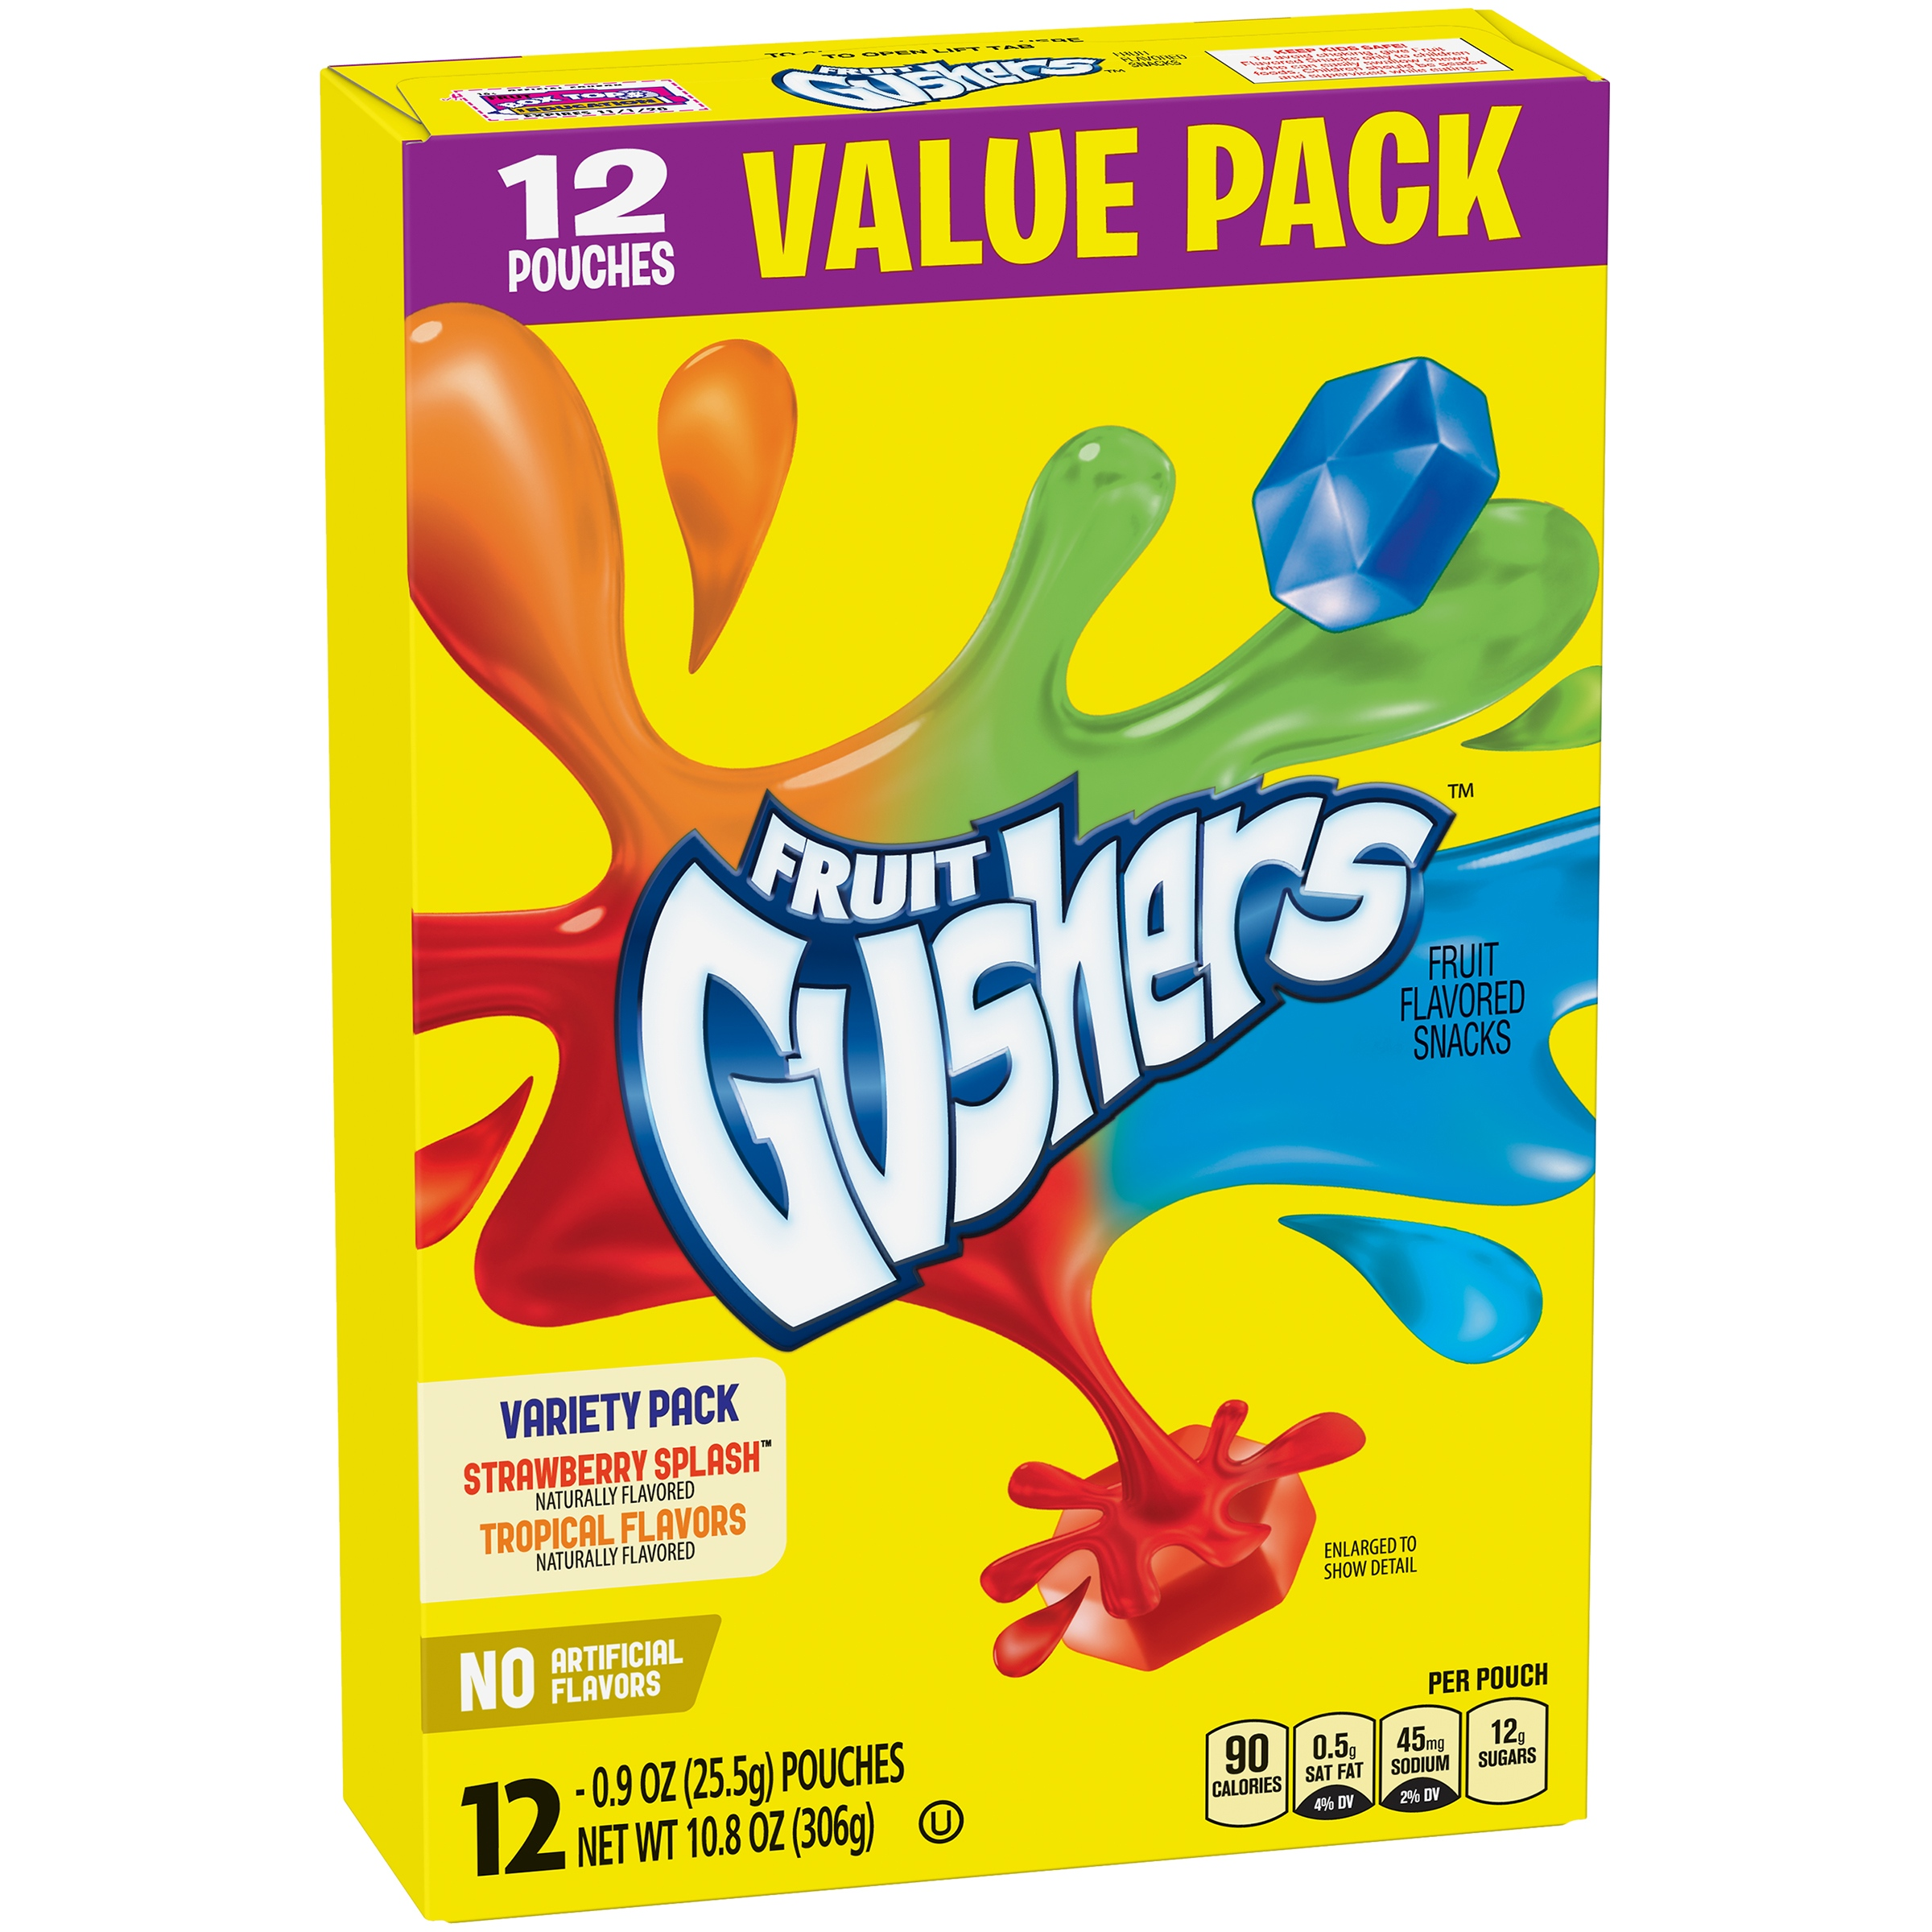 Betty Crocker® Gushers Fruit Snacks Variety Pack of Strawberry Splash and Tropical Flavors Value Pack 12 - 0.9 oz Pouches